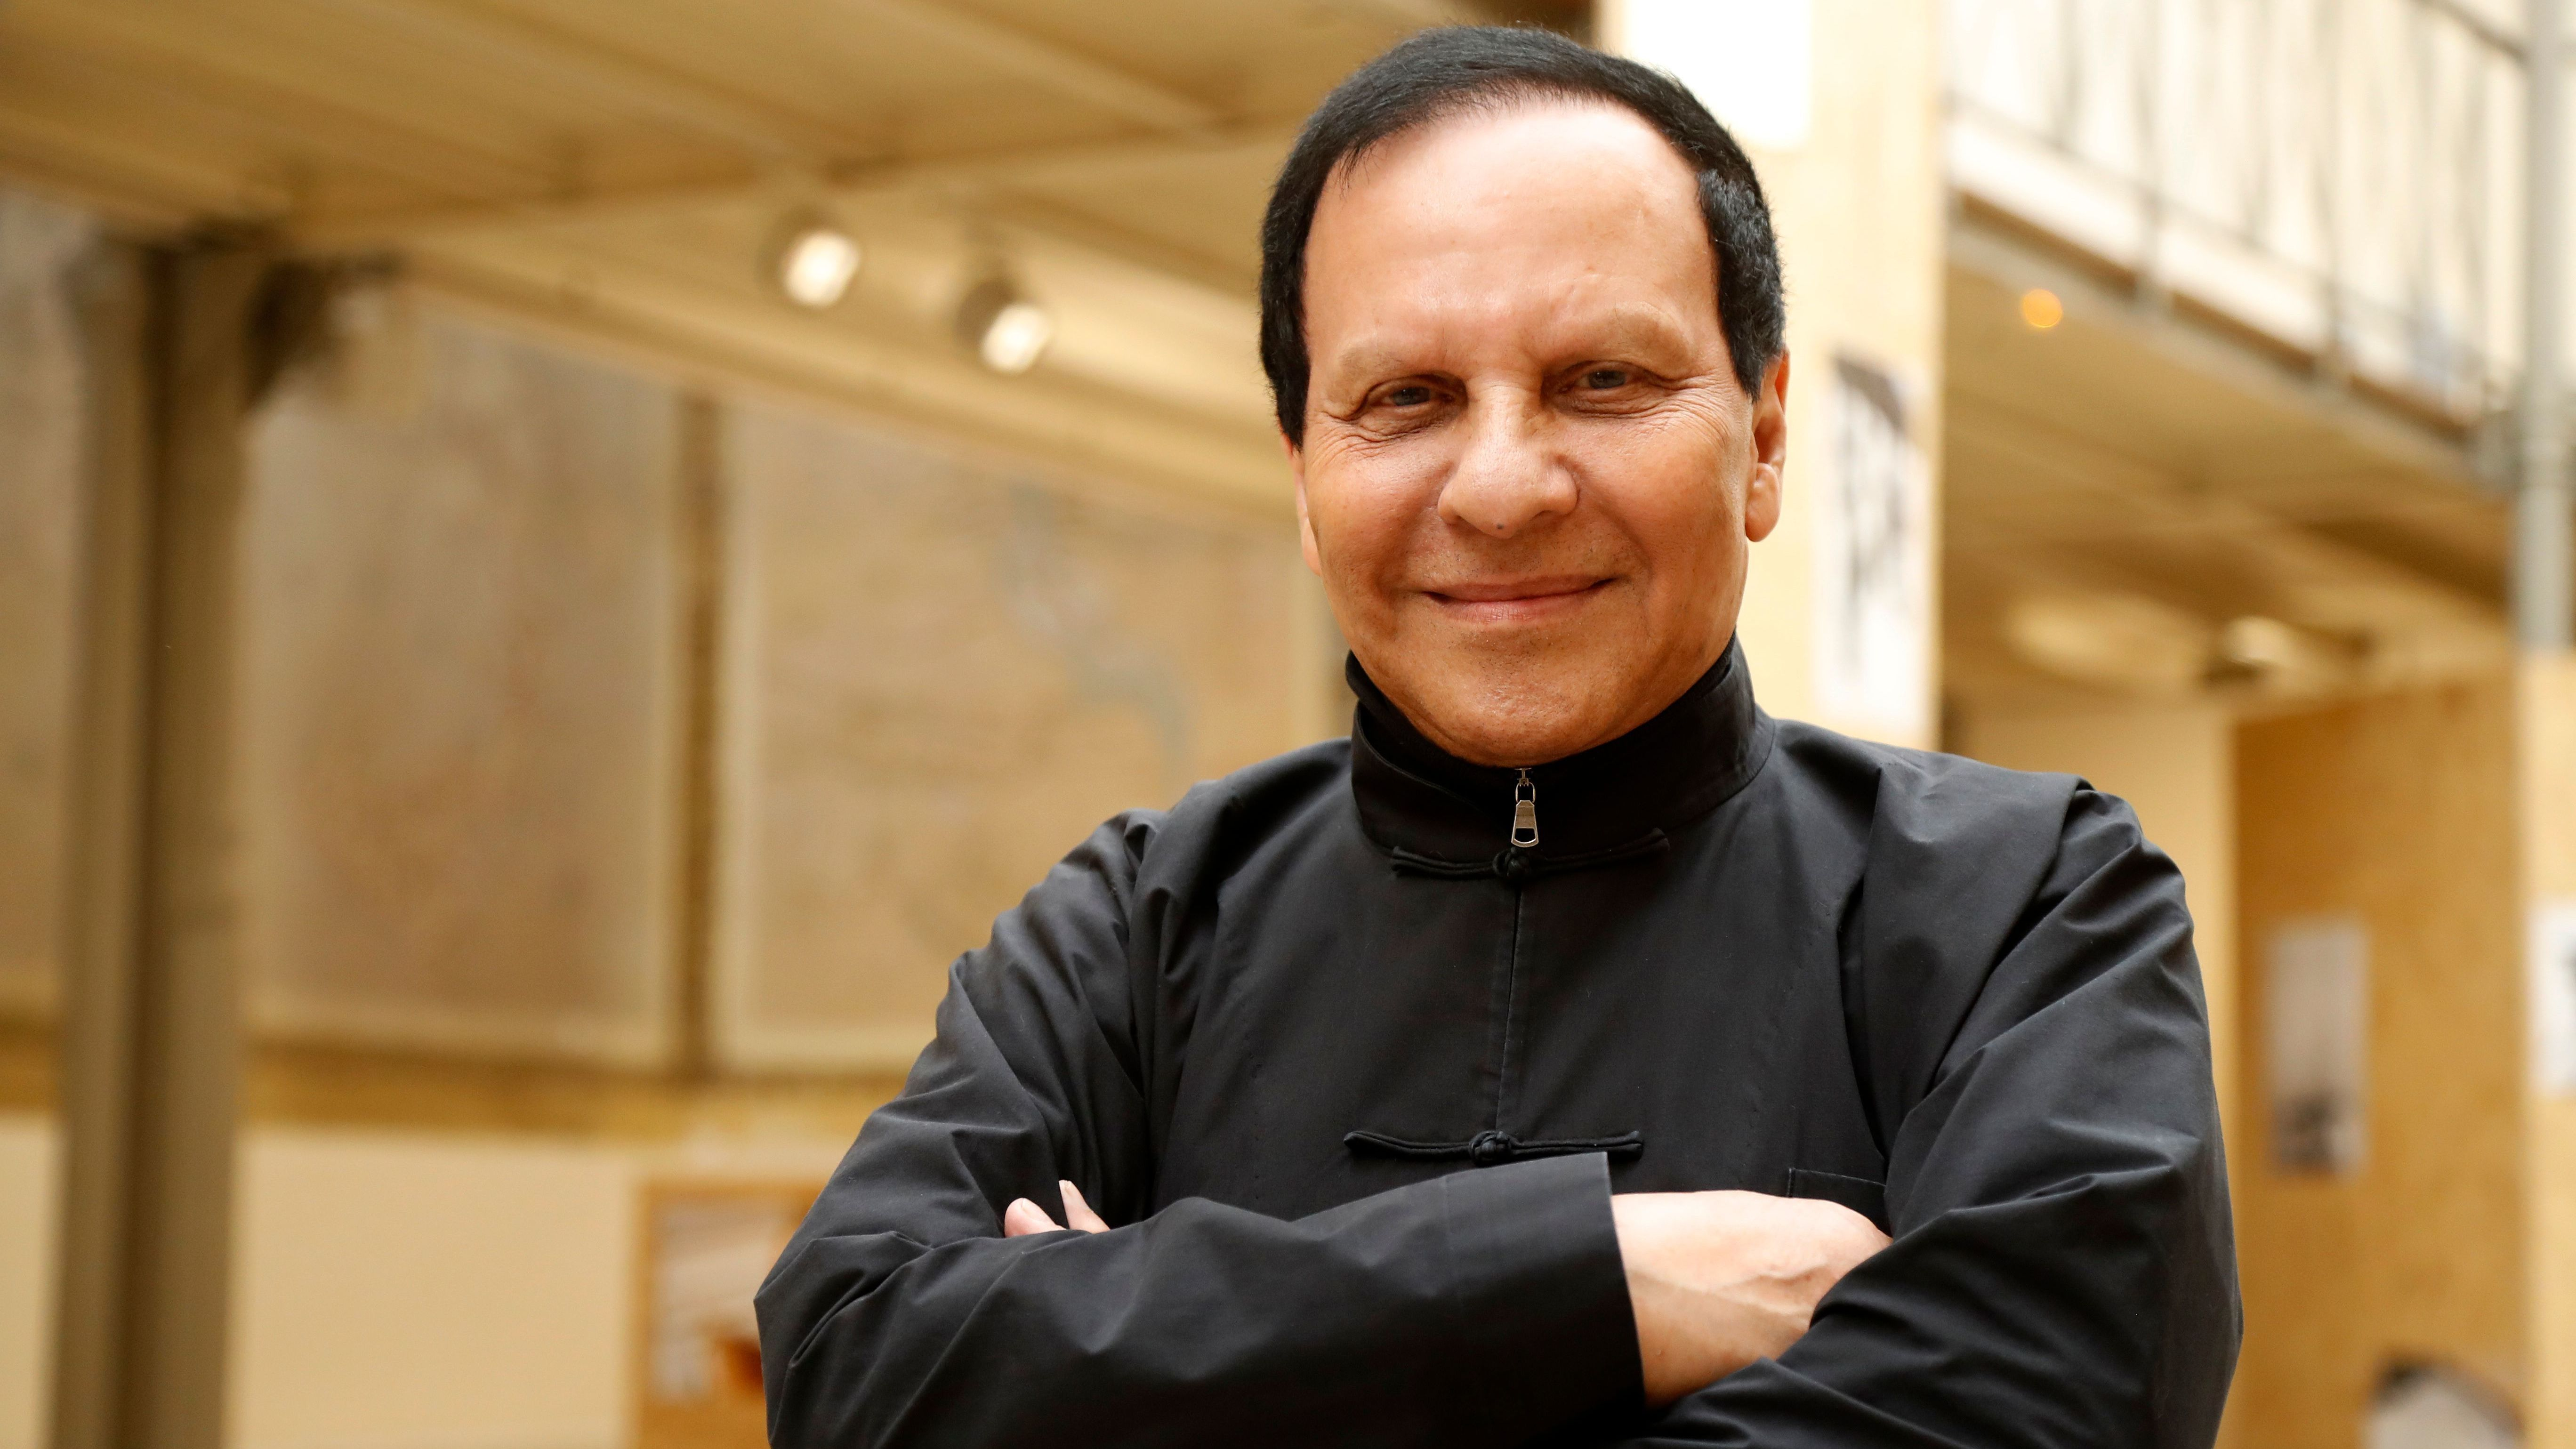 Azzedine Alaia French Fashion Designer Known As The 'King Of Cling' Dies